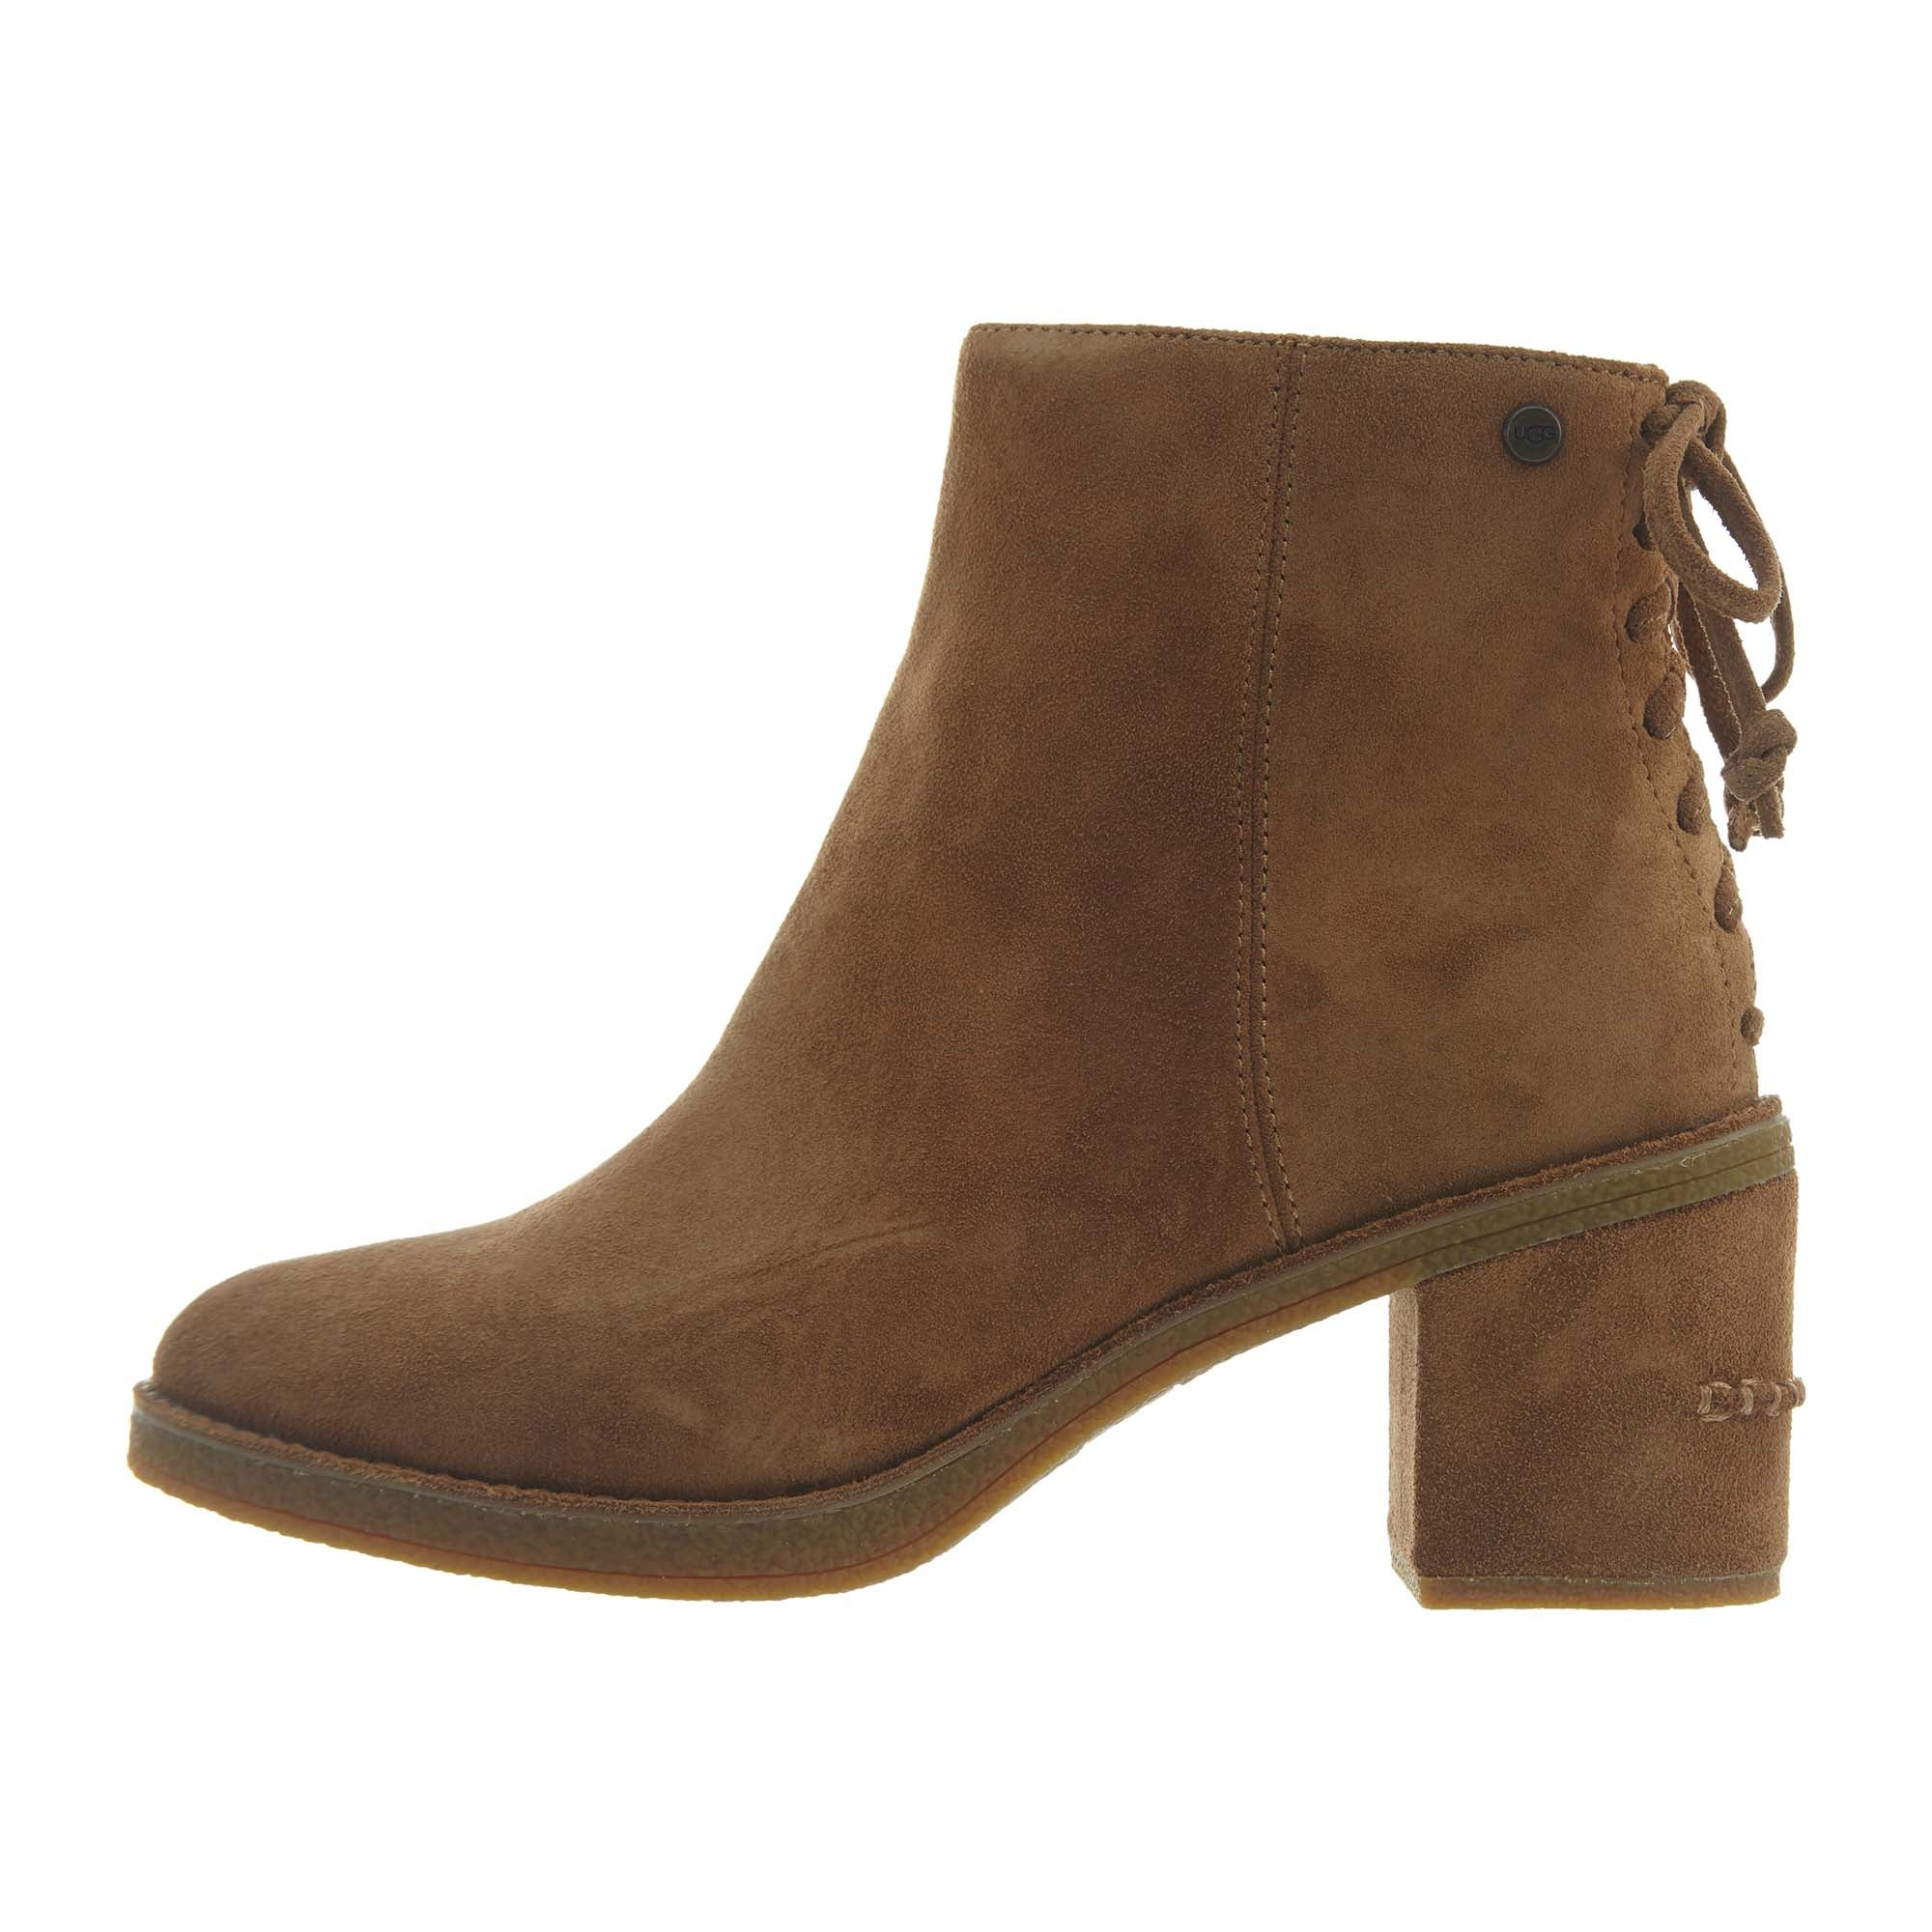 Ugg Corinne Boot Style   1095793-Che 429b8f11d